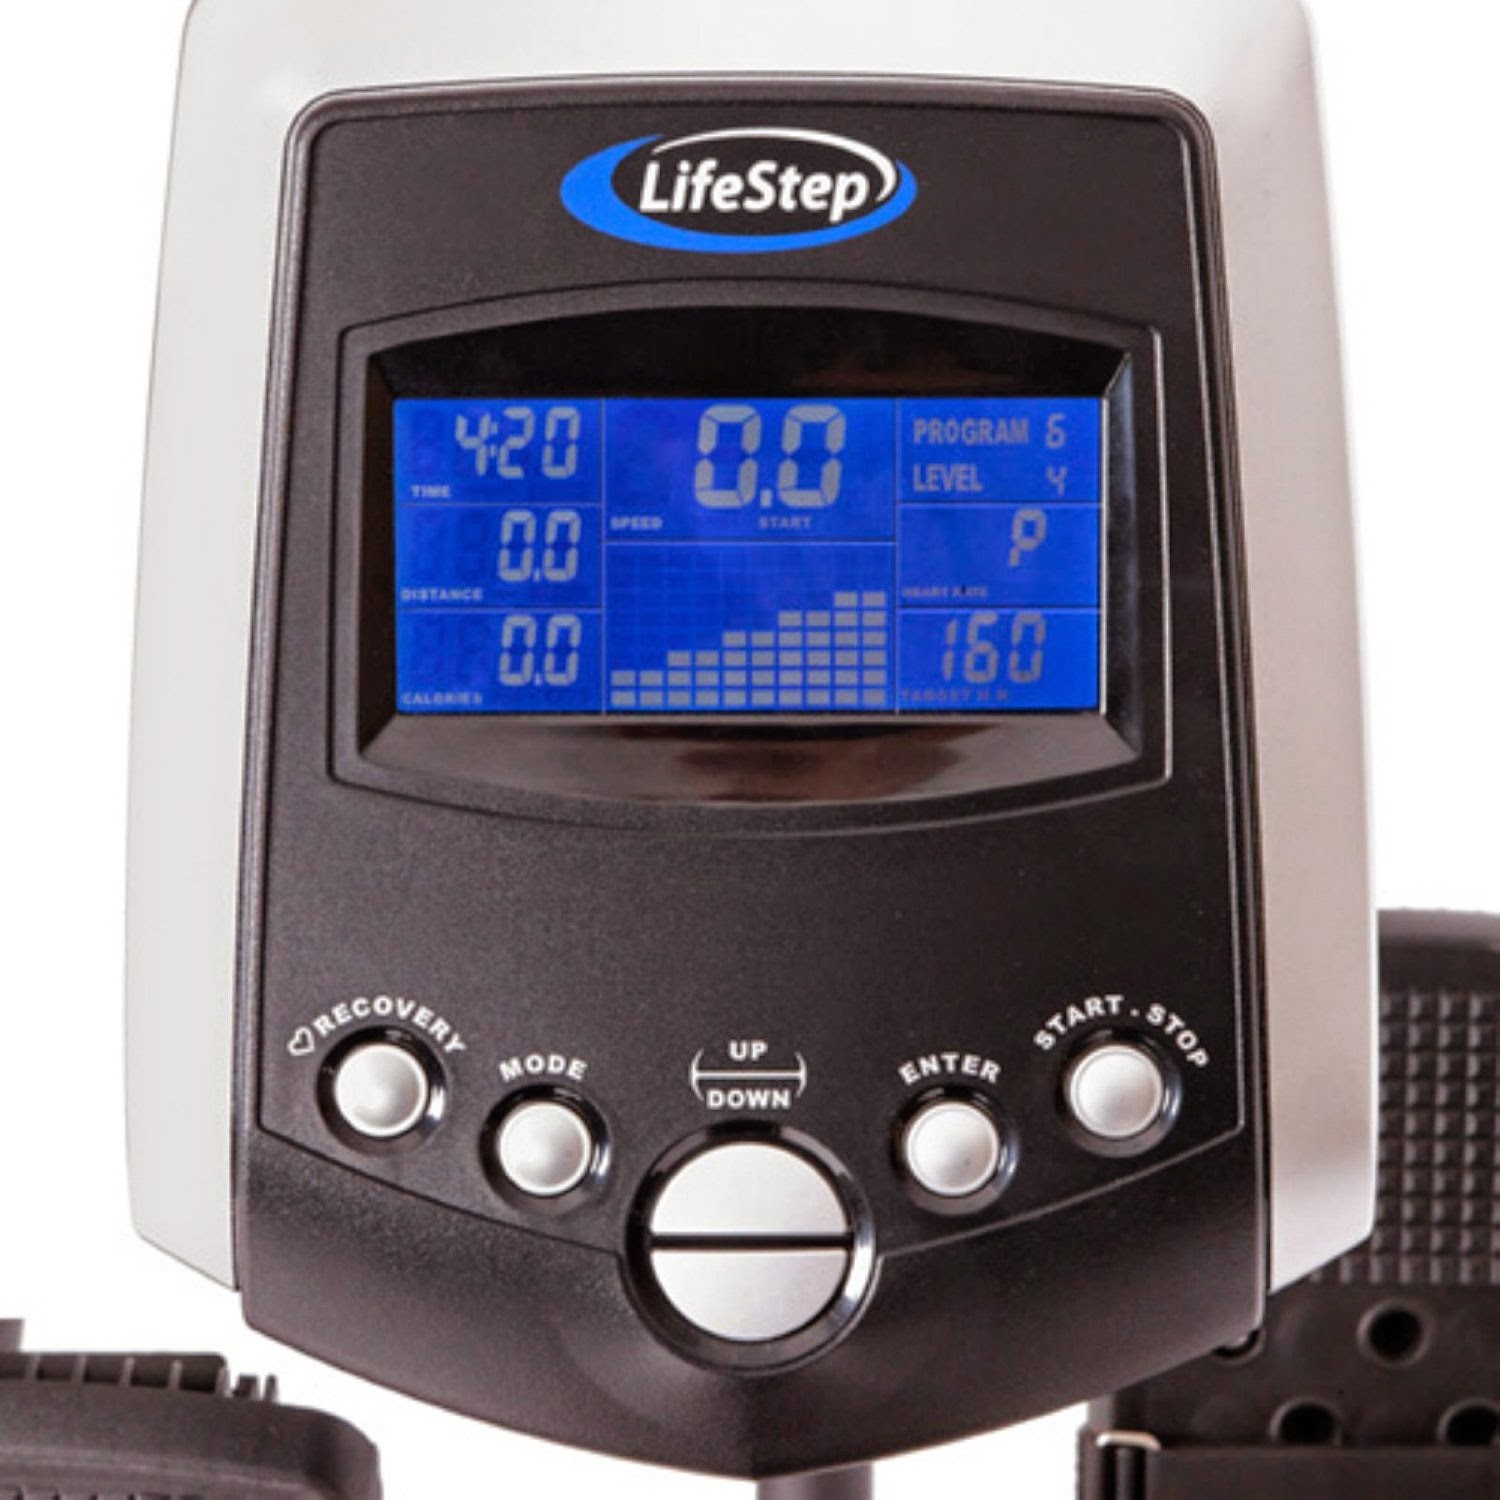 HCI Fitness LifeStep, workout console display, shows speed, time, distance, pulse, RPM, watts and calories burned